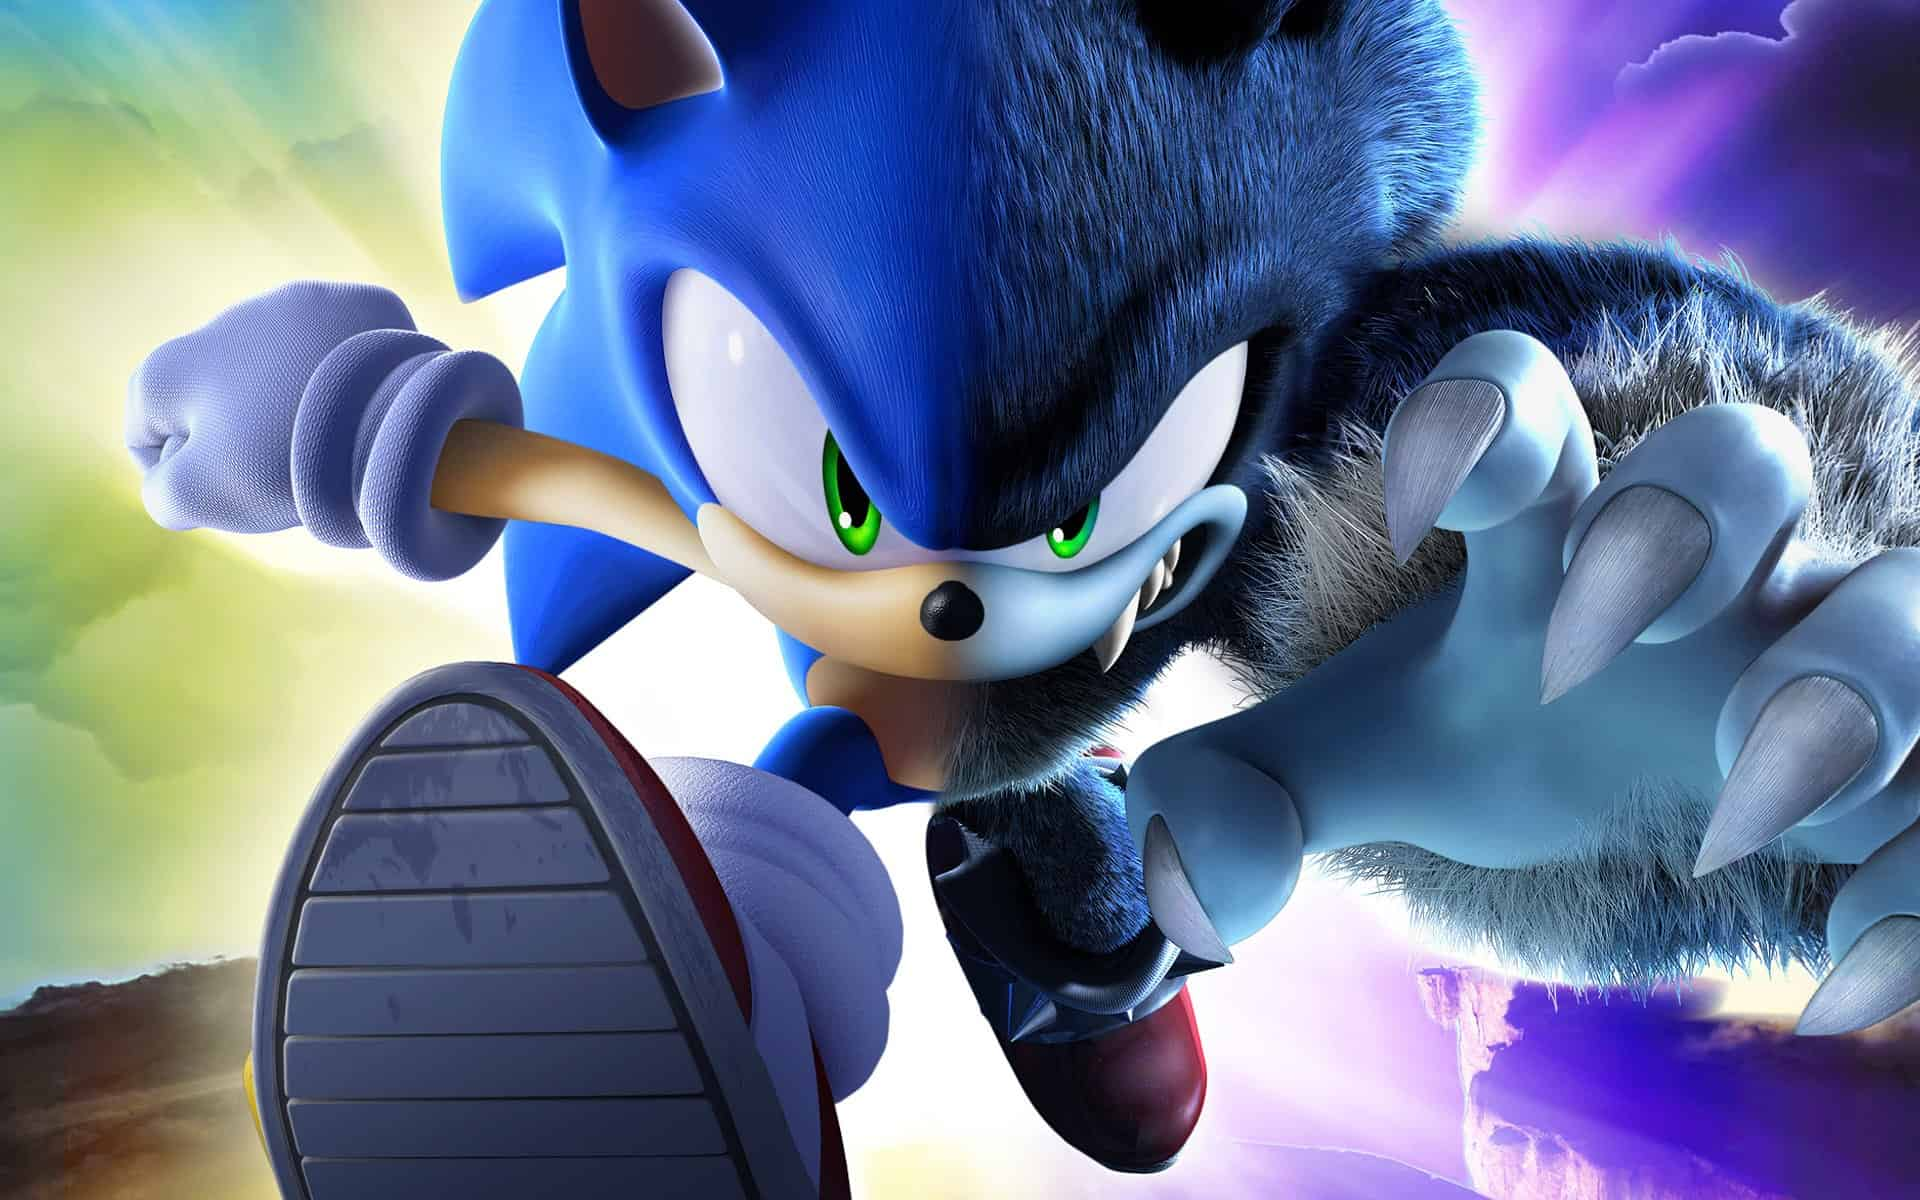 Sonic on Unreal Engine 4